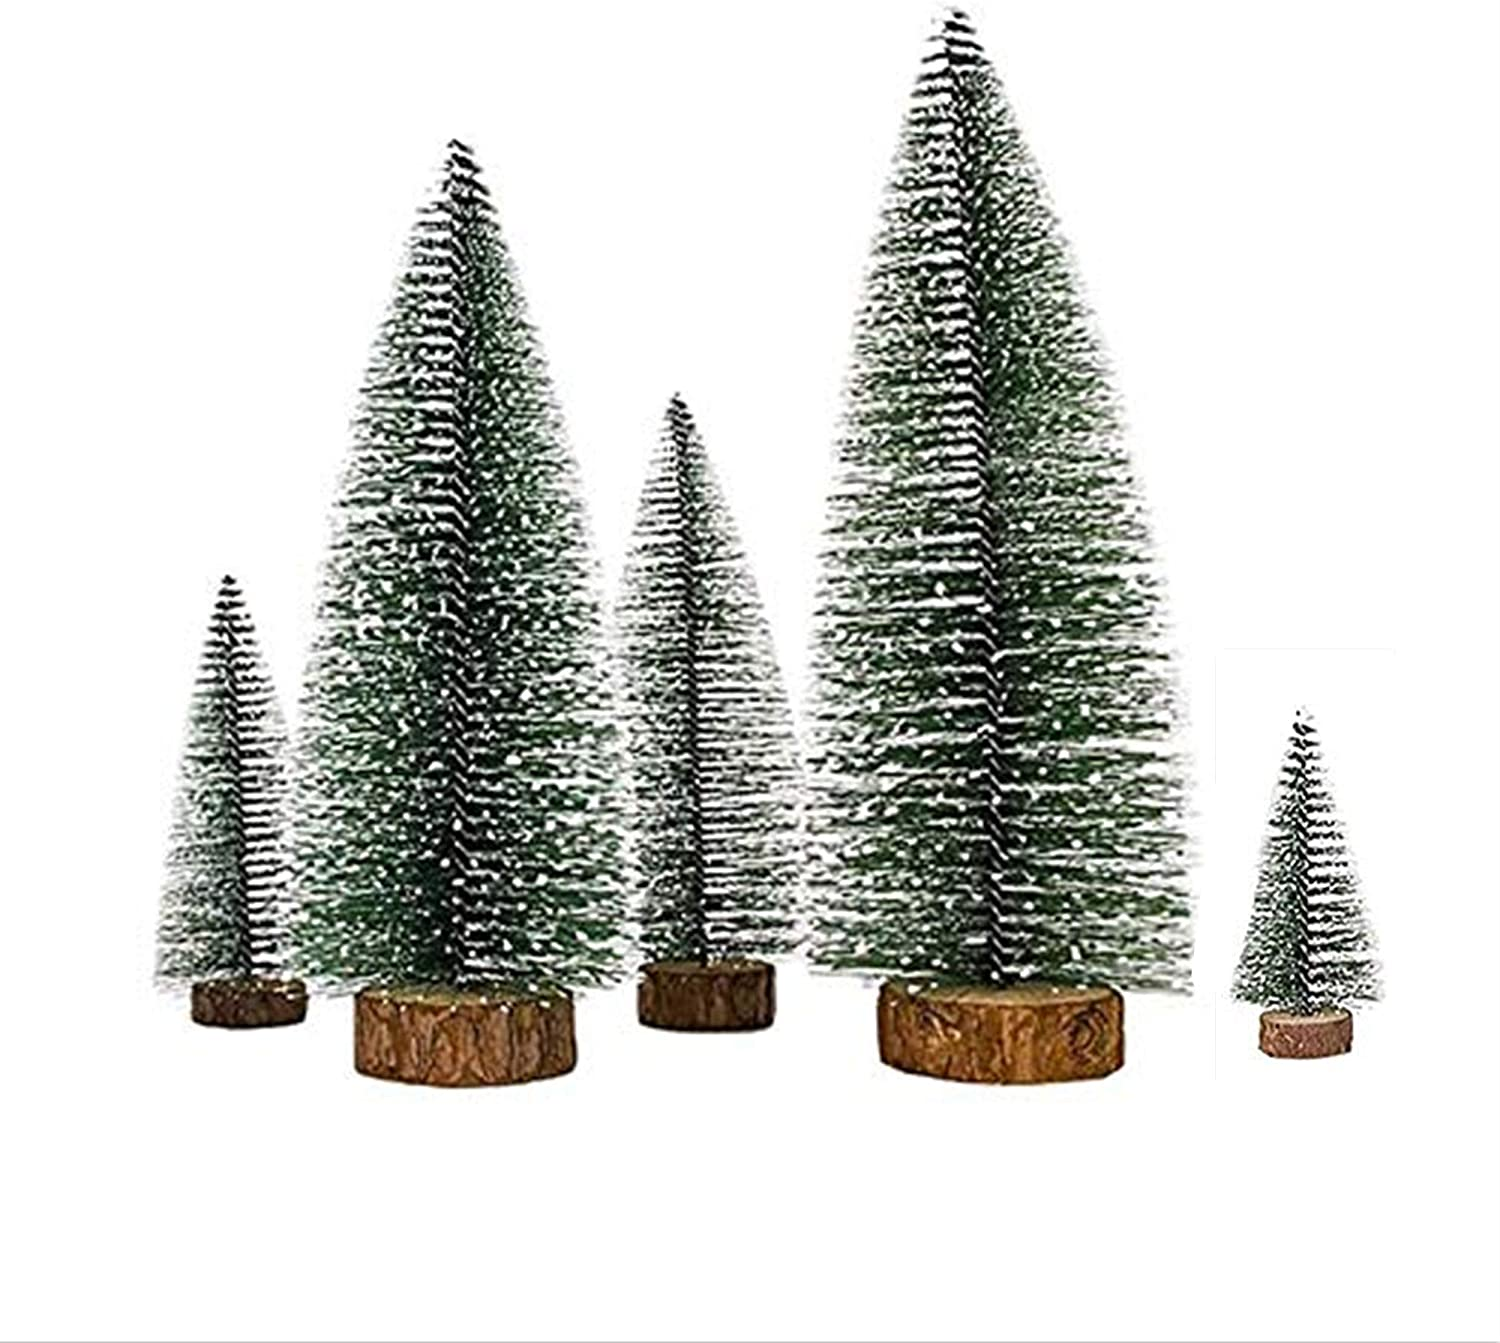 Fbaby 5 PCS Desktop Miniature Pine Tree Artificial Mini Christmas Sisal Snow Frost Trees with Wooden Bases Plastic Winter Snow Ornaments Tabletop Trees for Christmas Party Home Decor